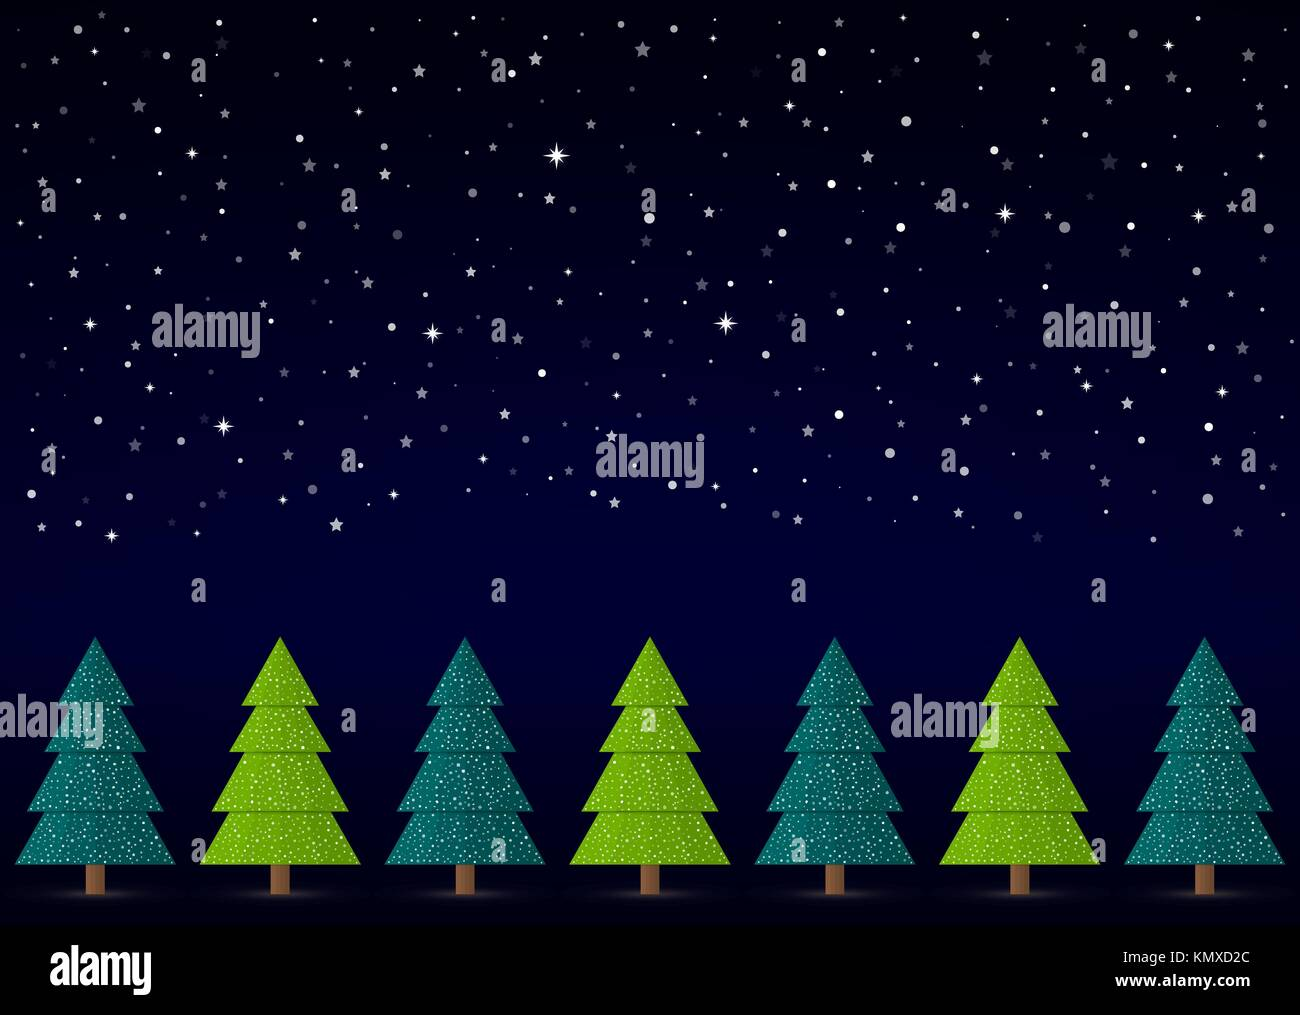 Vector Christmas Winter Background. Night sky, snow, stars with abstract conifers with snow in a row. - Stock Vector